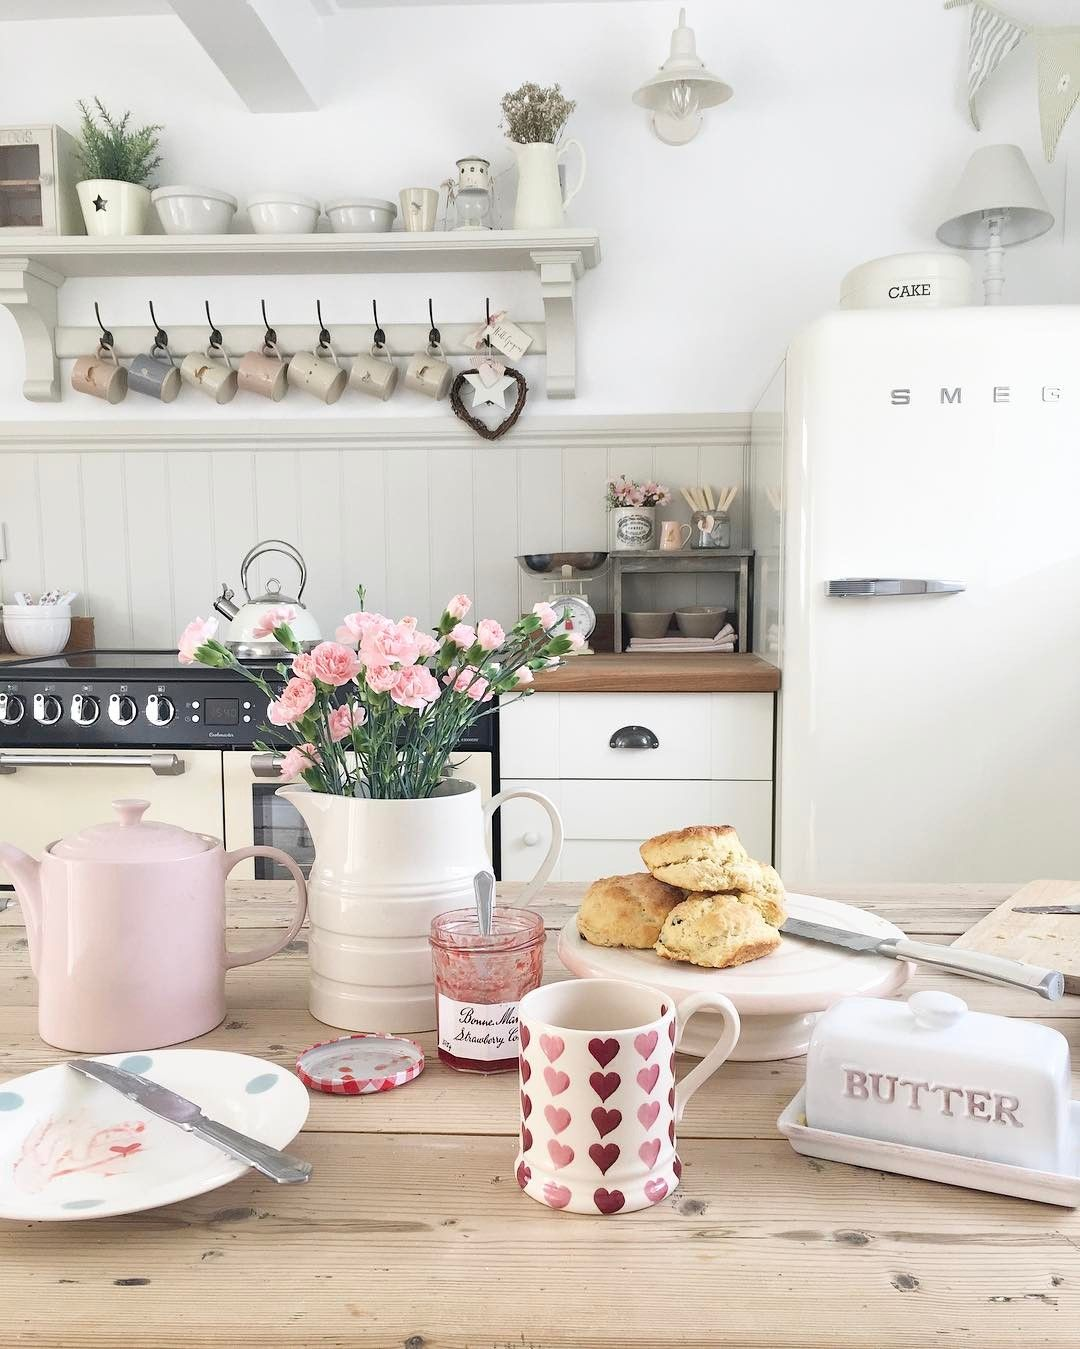 Interesting Facts About Shabby Chic Country Kitchen Design: Pin By Mandana On Shabby Chic ♡ In 2019